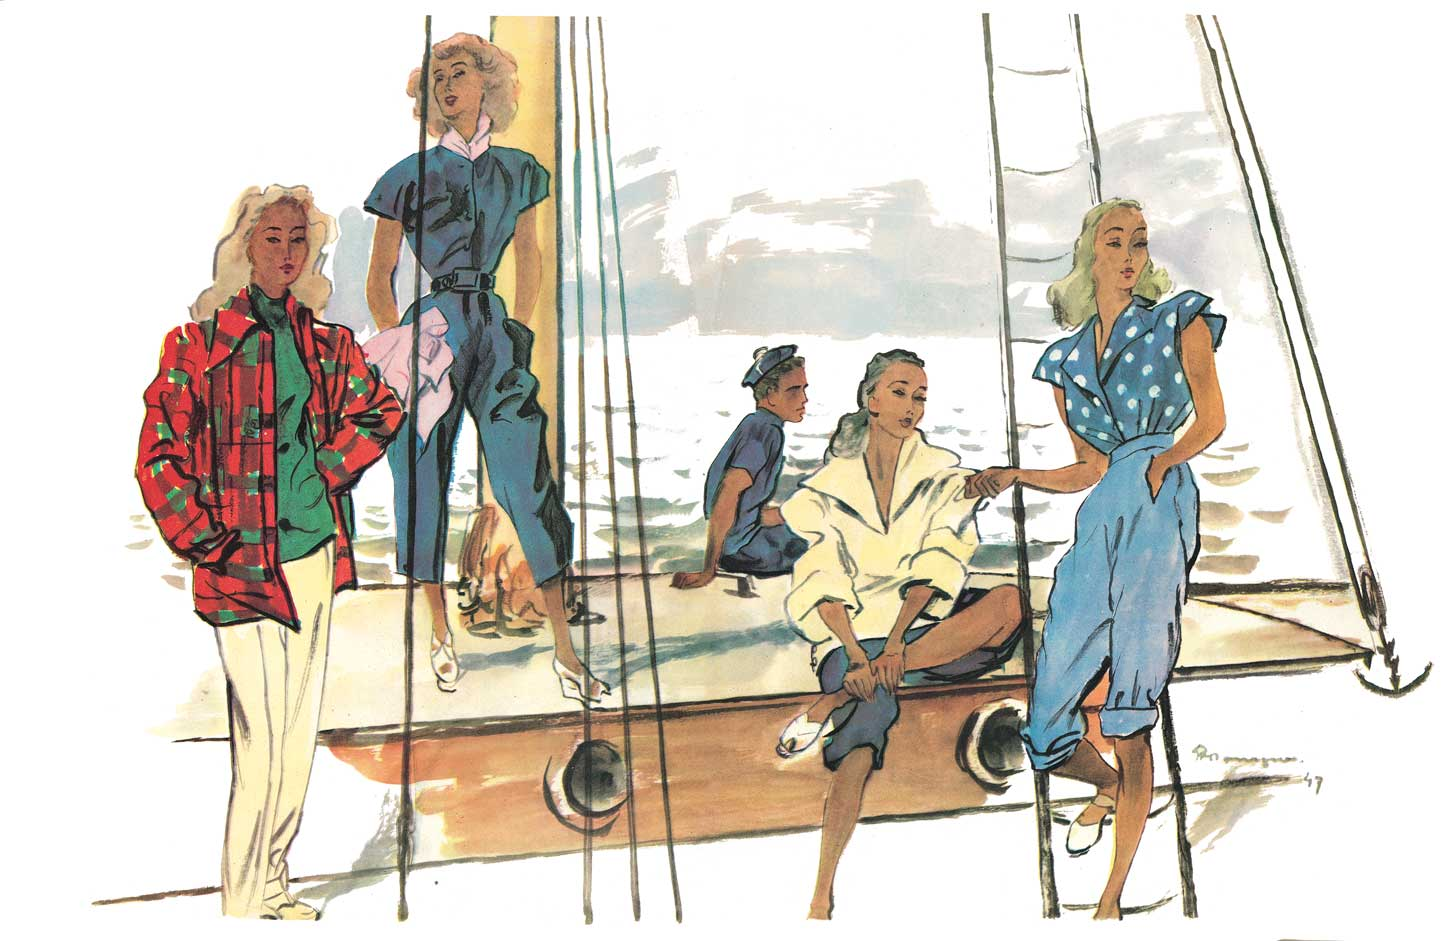 Chic casual designs by Jacques Fath, Pierre Balmain, Carven and Jean Patou, illustrated by Pierre Mourgue, 1947 © Pierre Mourgue